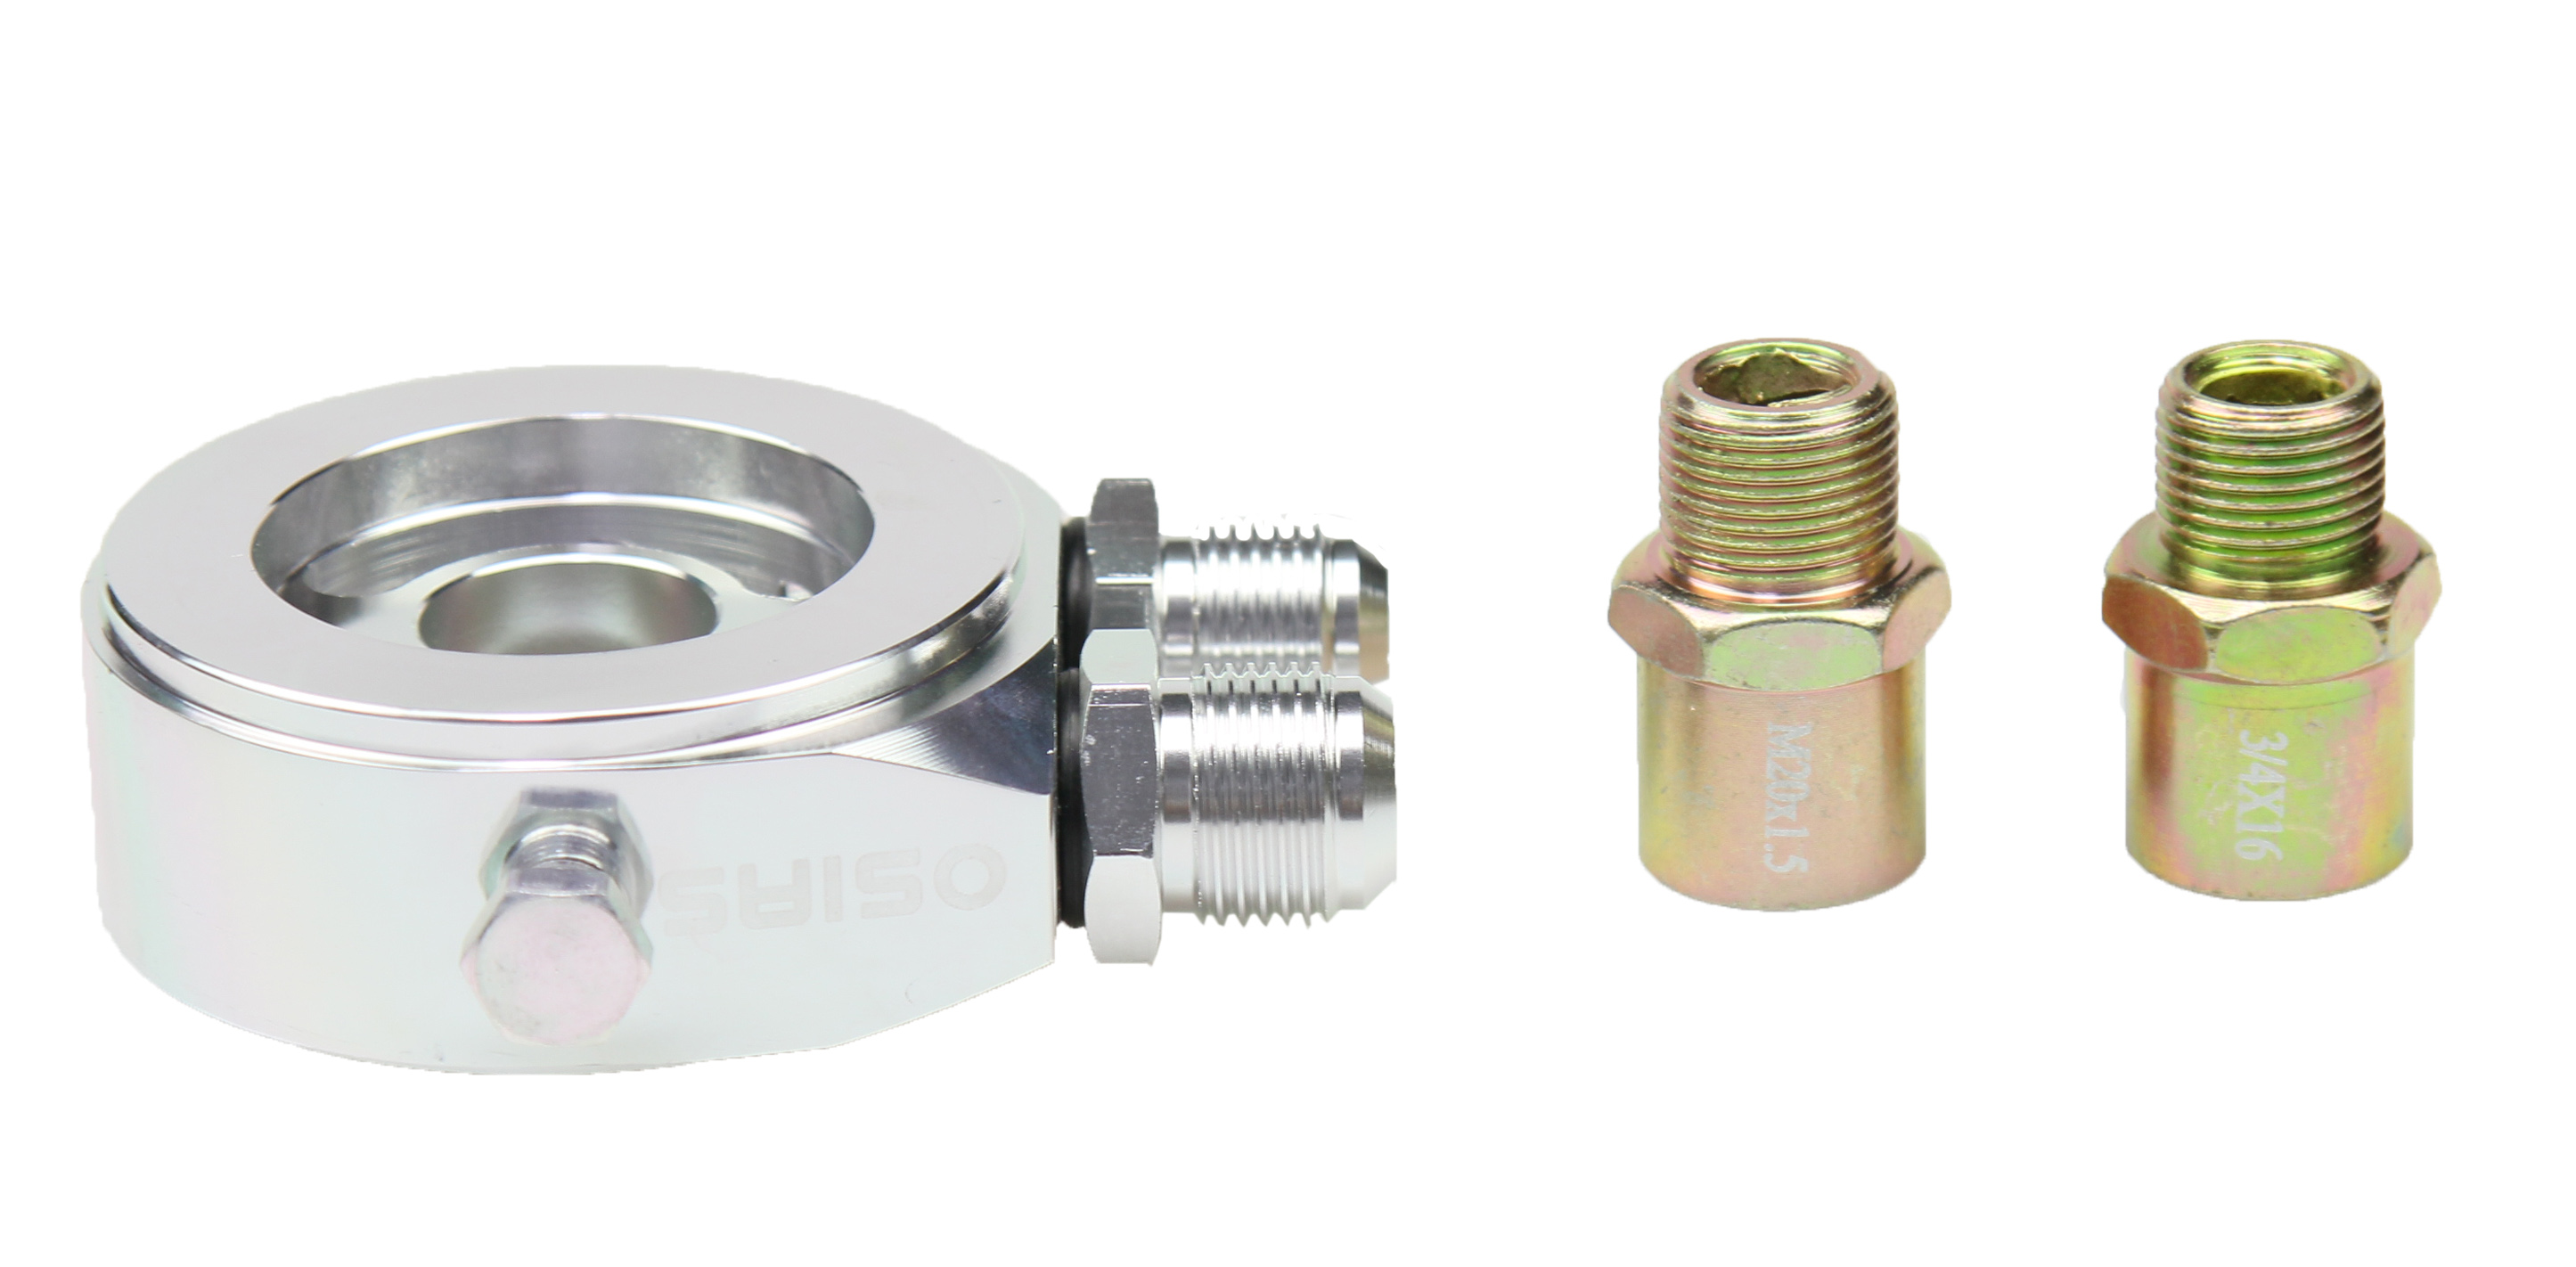 MALE ADAPTOR FITTING M20 X 1.5 MM MOCAL OIL COOLER FILTER SANDWICH PLATE MALE